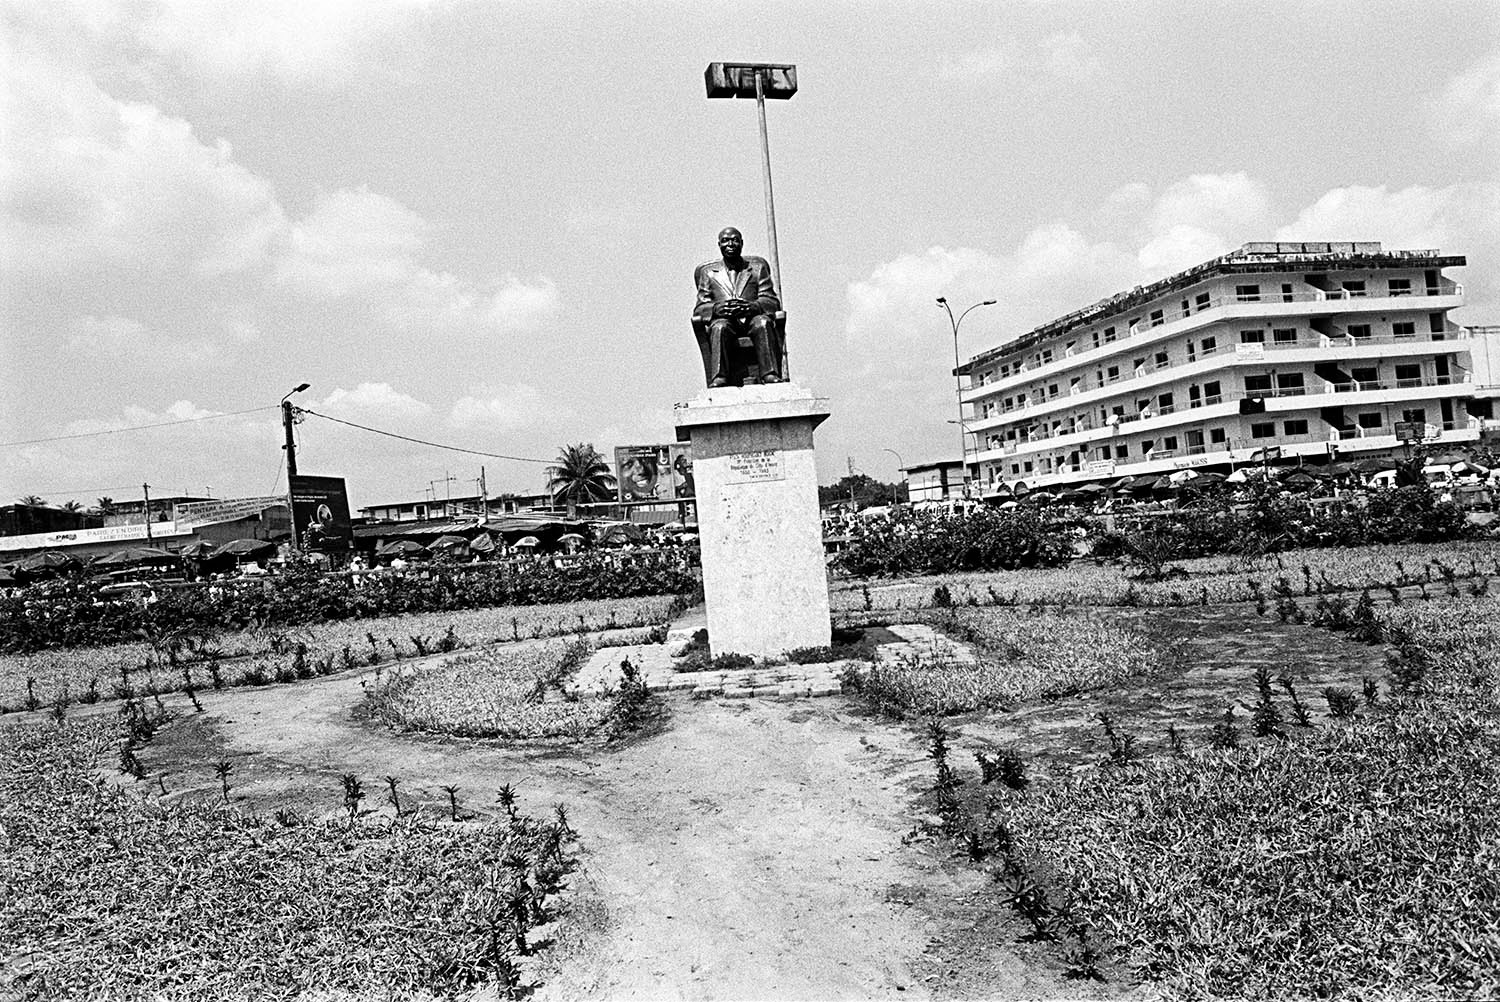 A statue of Felix Houphouet-Boigny stands in Abidjan. As Cote d'Ivoire's first president from 1960 to 1993, Houphouet-Boigny encouraged foreigners from surrounding countries and people from northern Cote d'Ivoire to immigrate to the south to develop Cote d'Ivoire's growing agricultural sector.